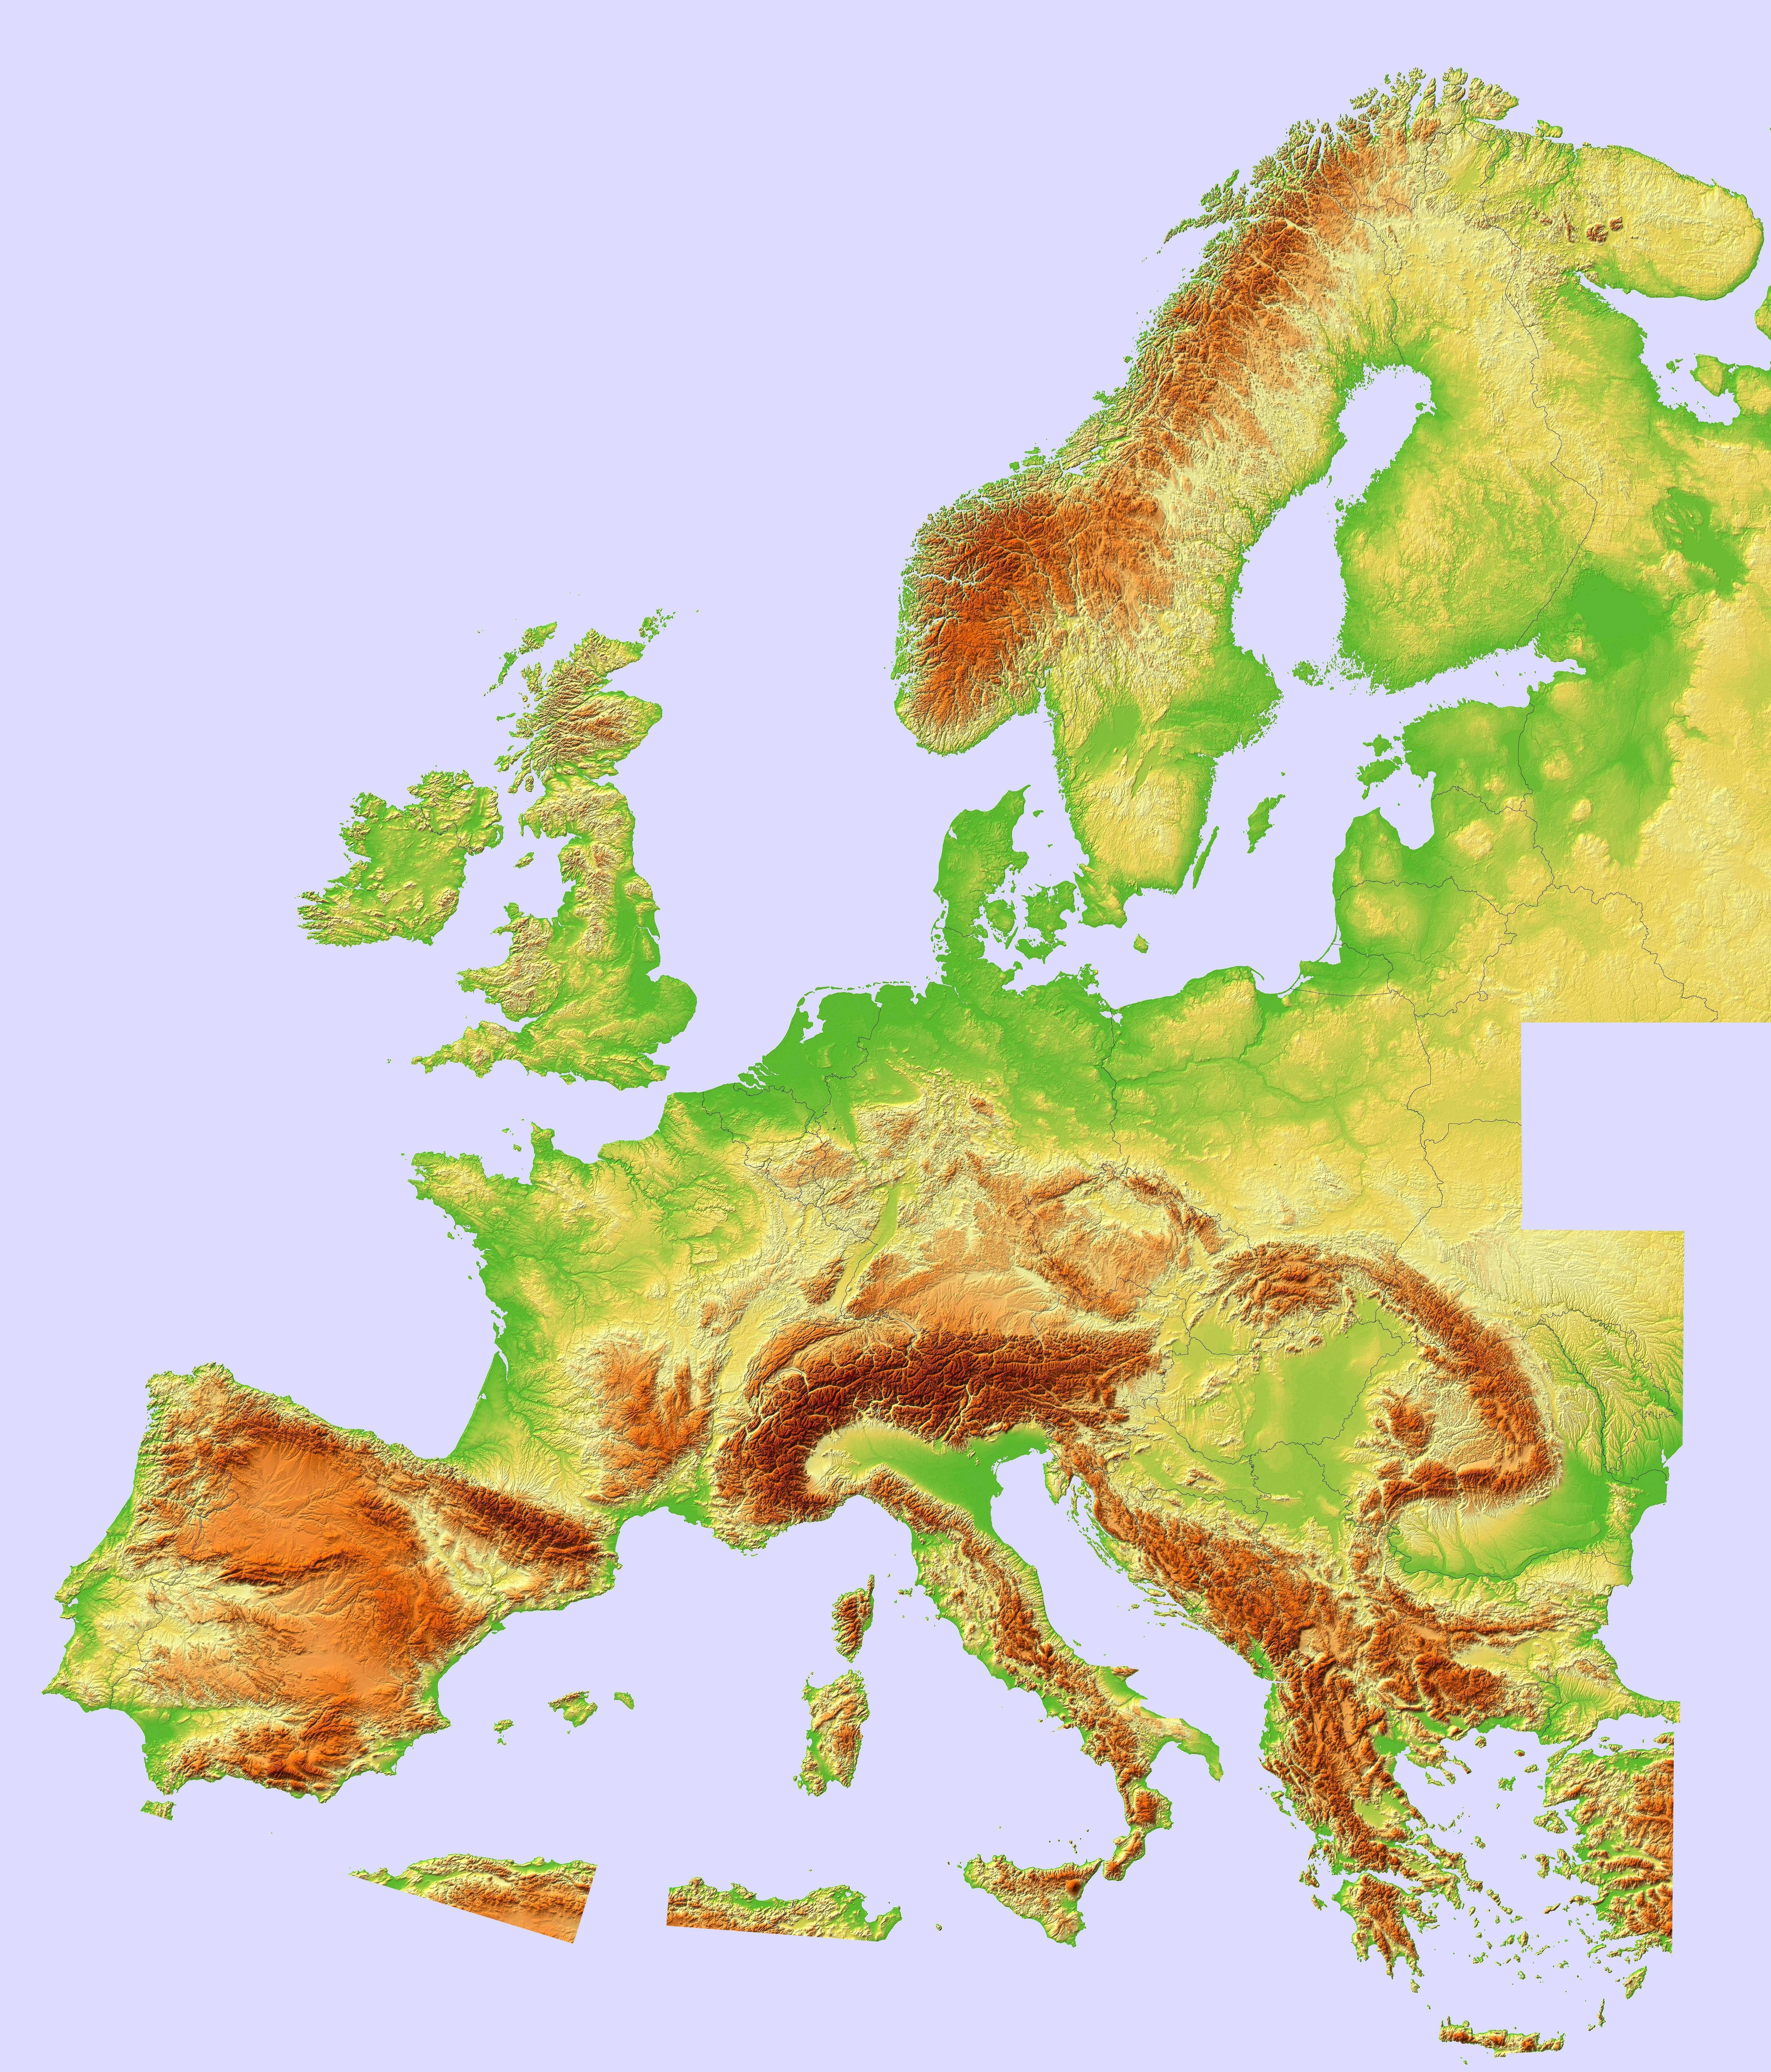 composite topographic hillshade map of europe europe